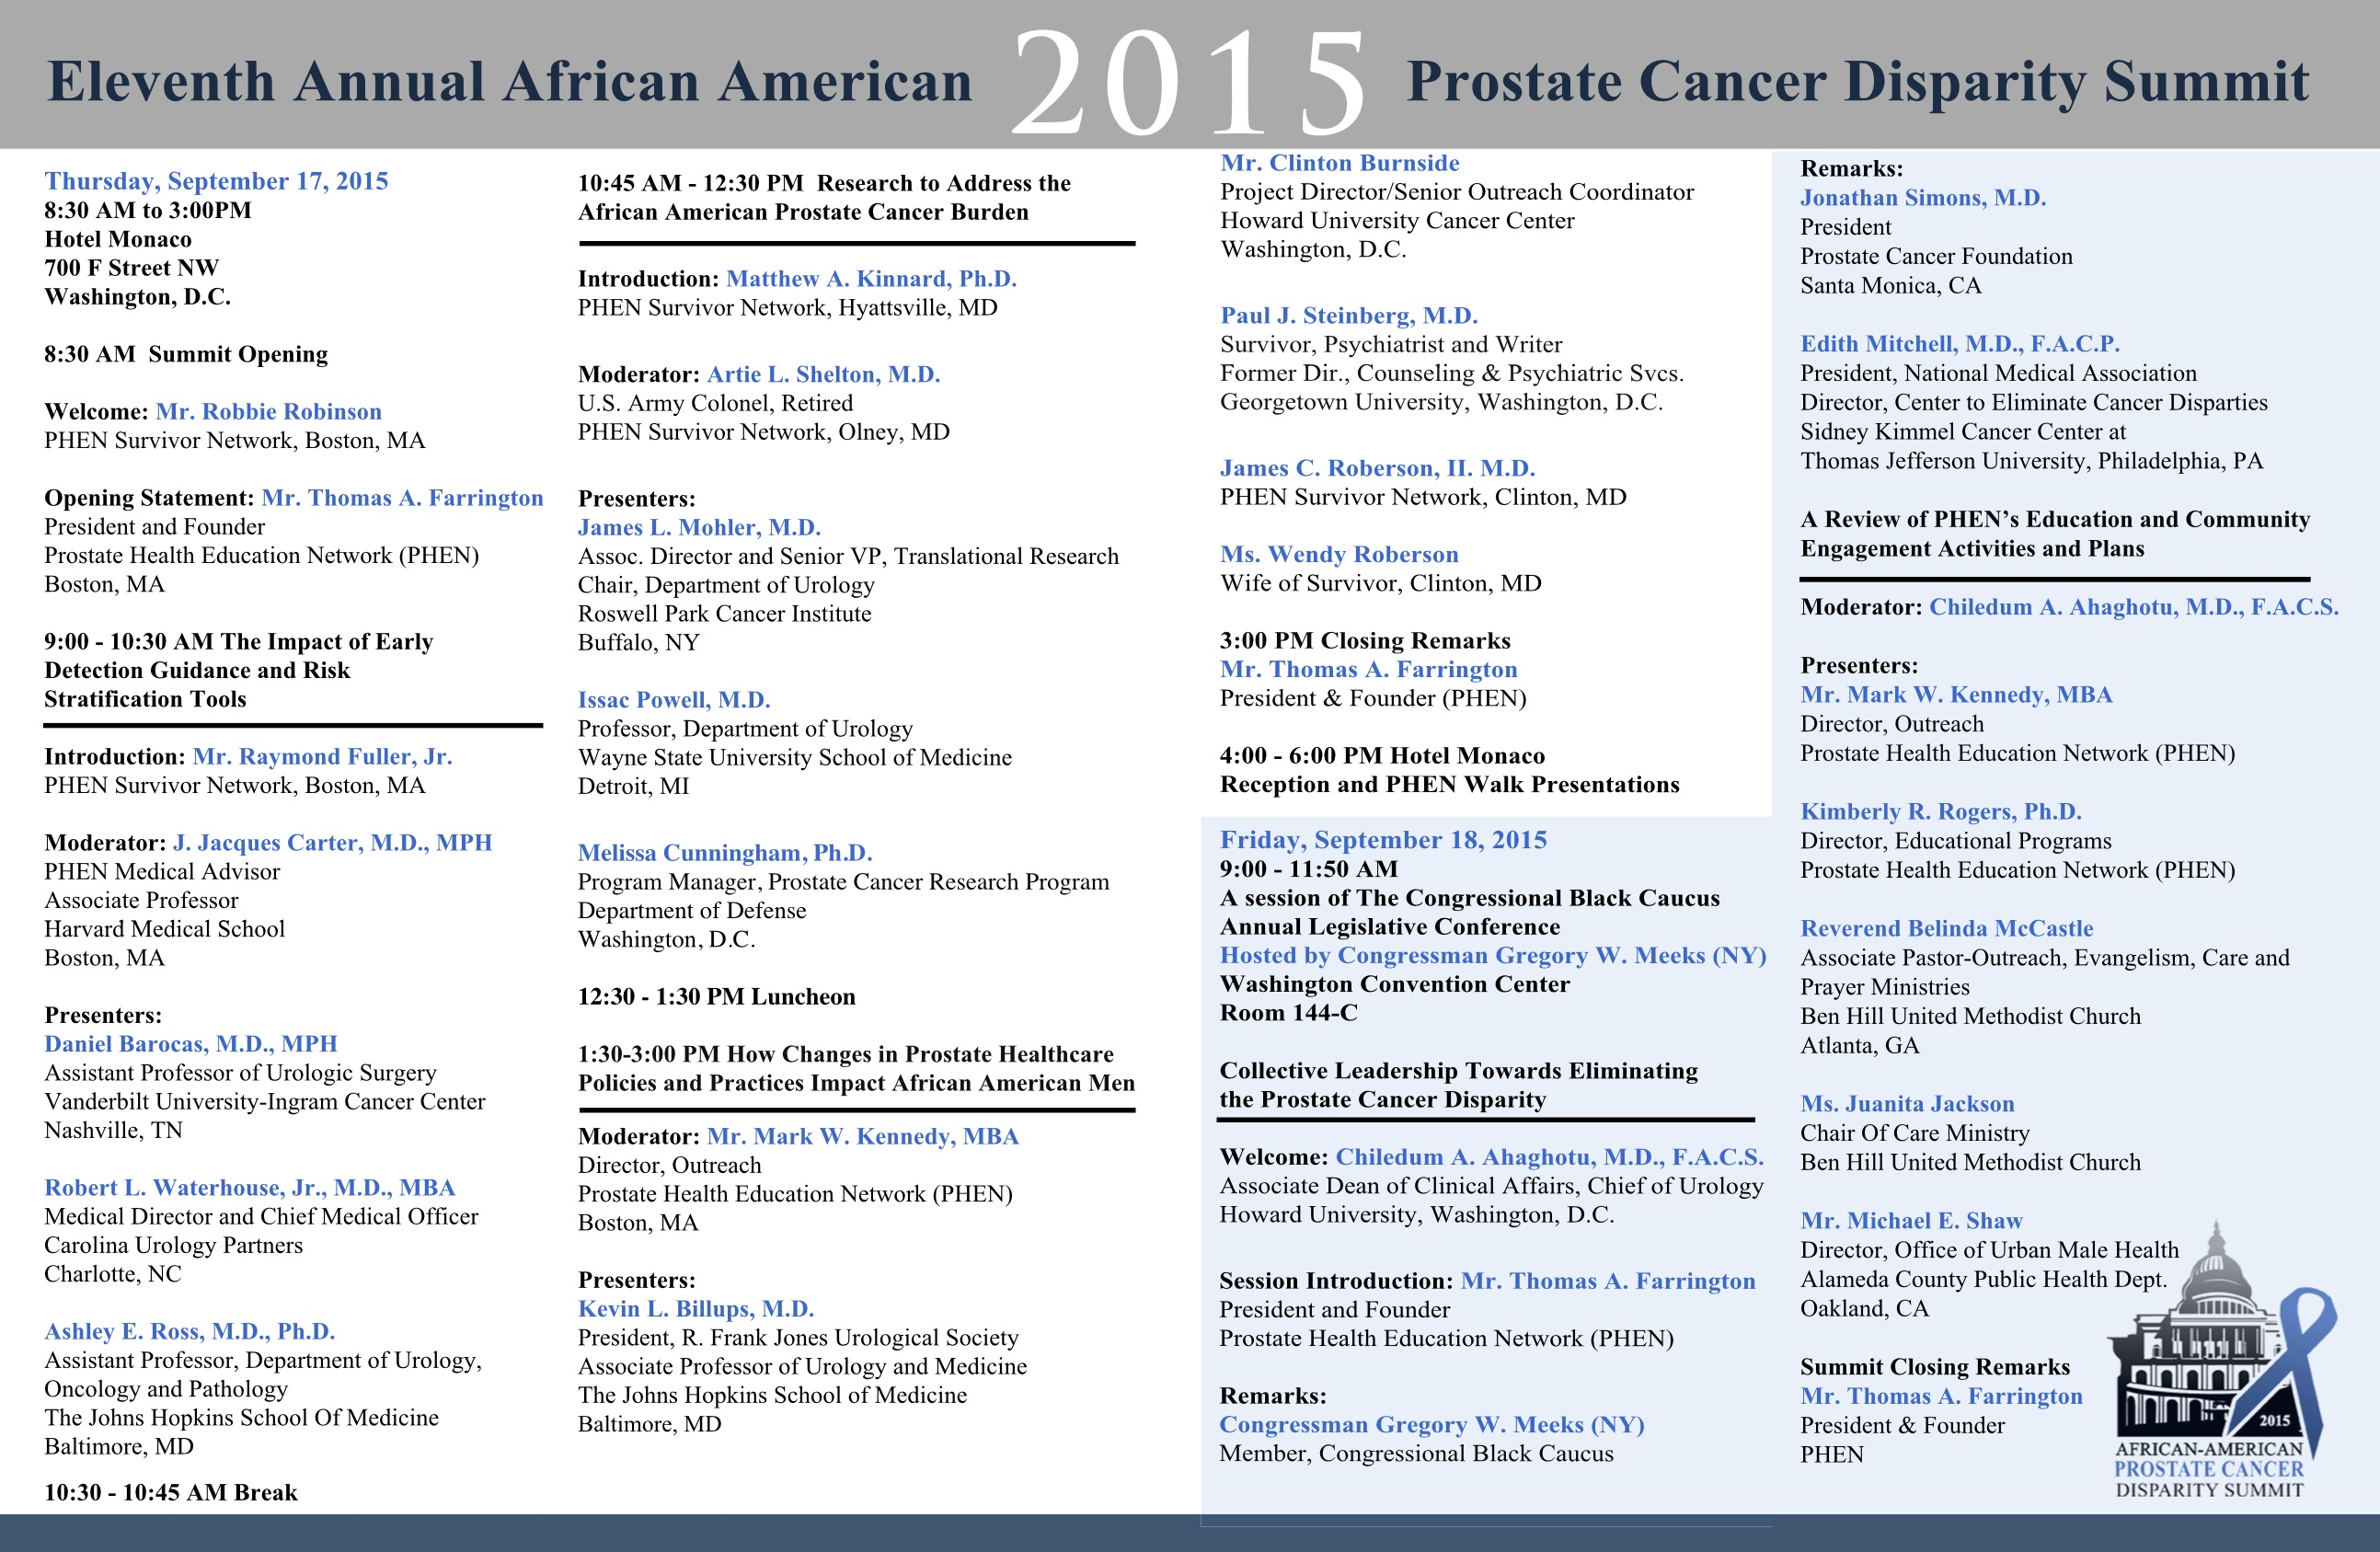 African-American Prostate Cancer Disparities